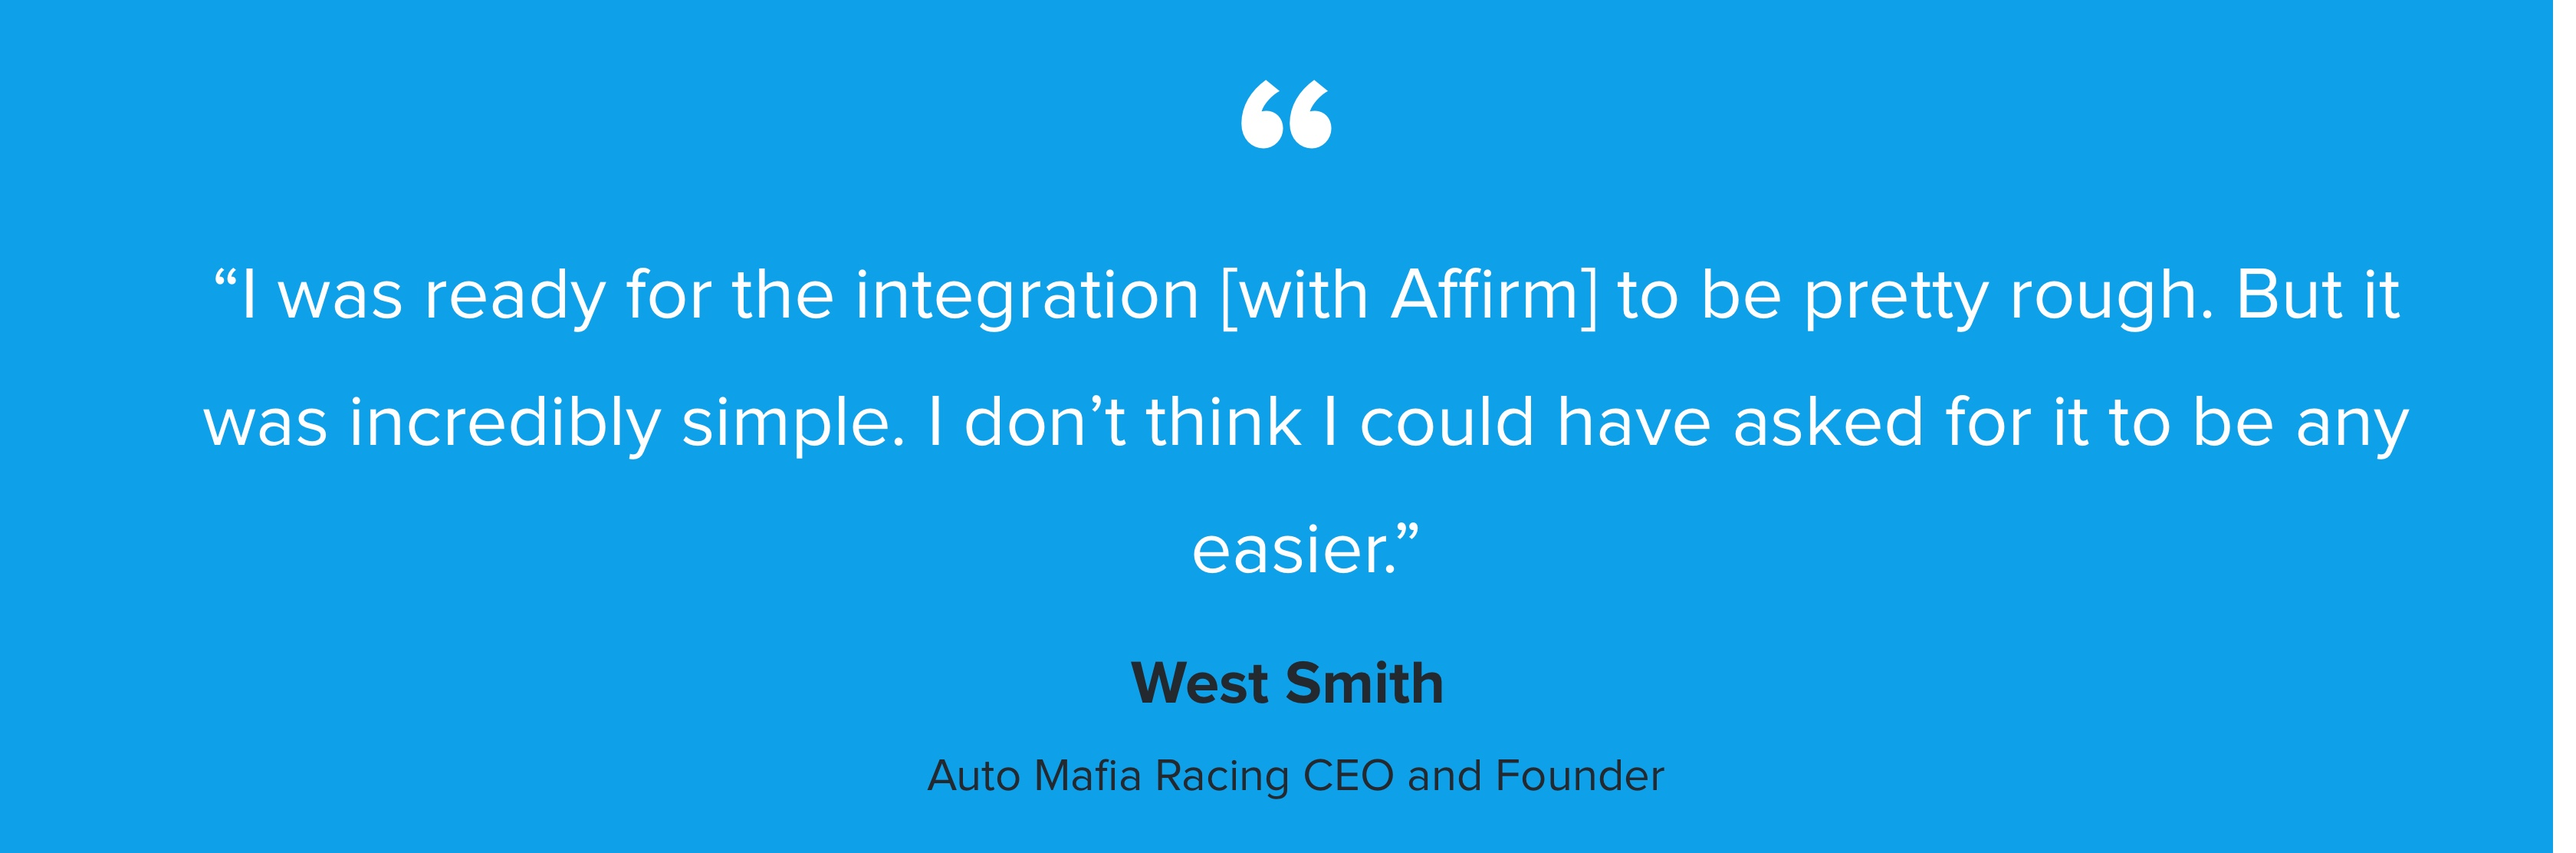 Affirm's self-service plug-in with Shopify took Auto Mafia Racing into the big leagues - Image 1